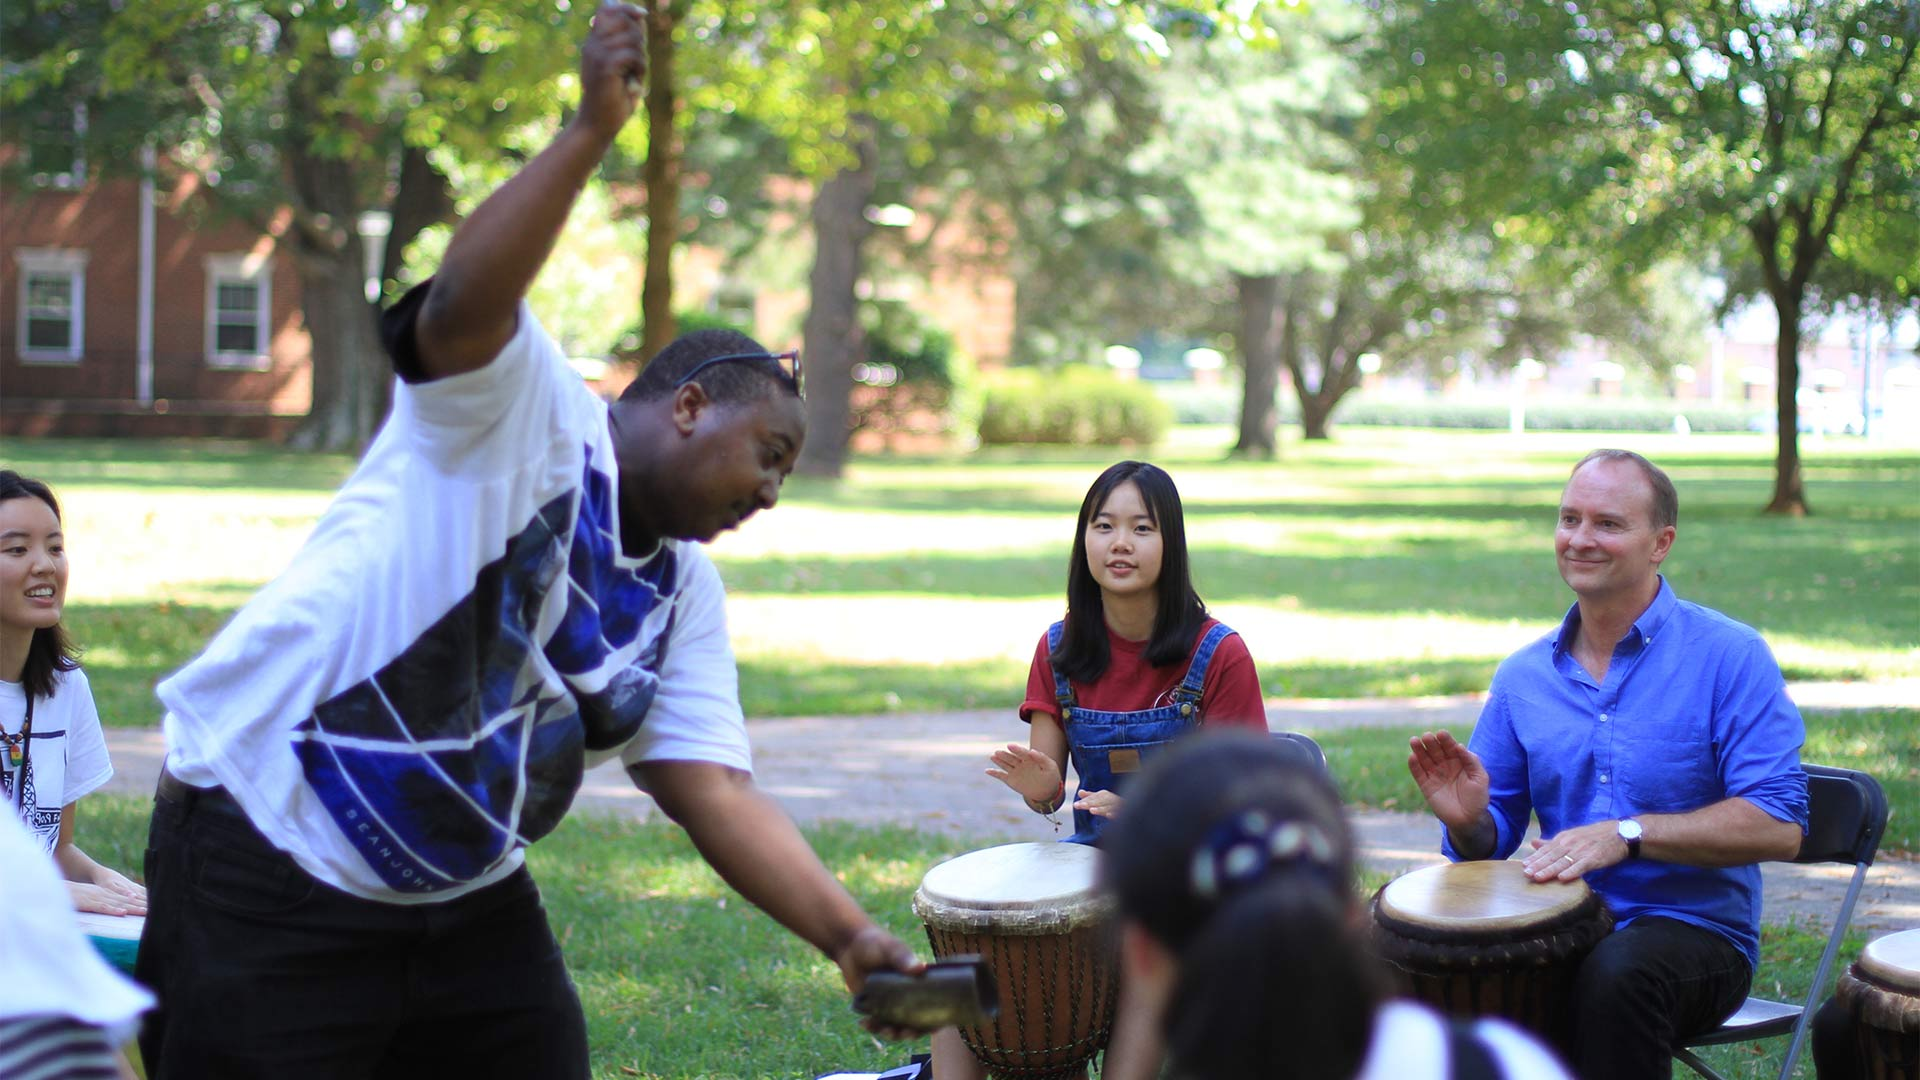 A drum circle gave everyone the opportunity to make a little music together.